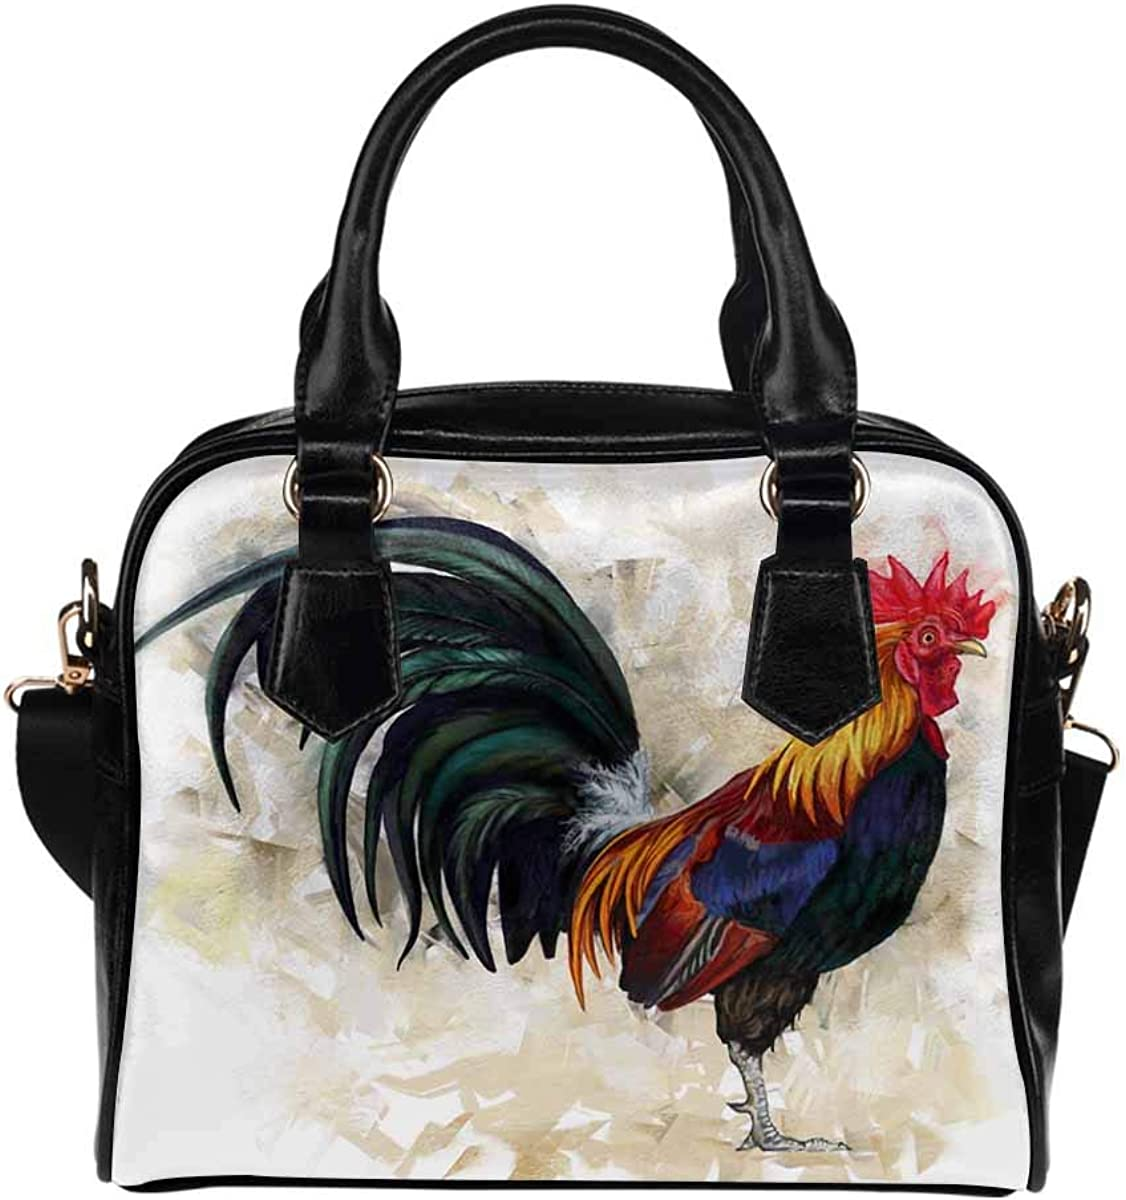 InterestPrint Cock Chicken Painting Shoulder Bag Casual Popular brand in the world Women's Ranking TOP1